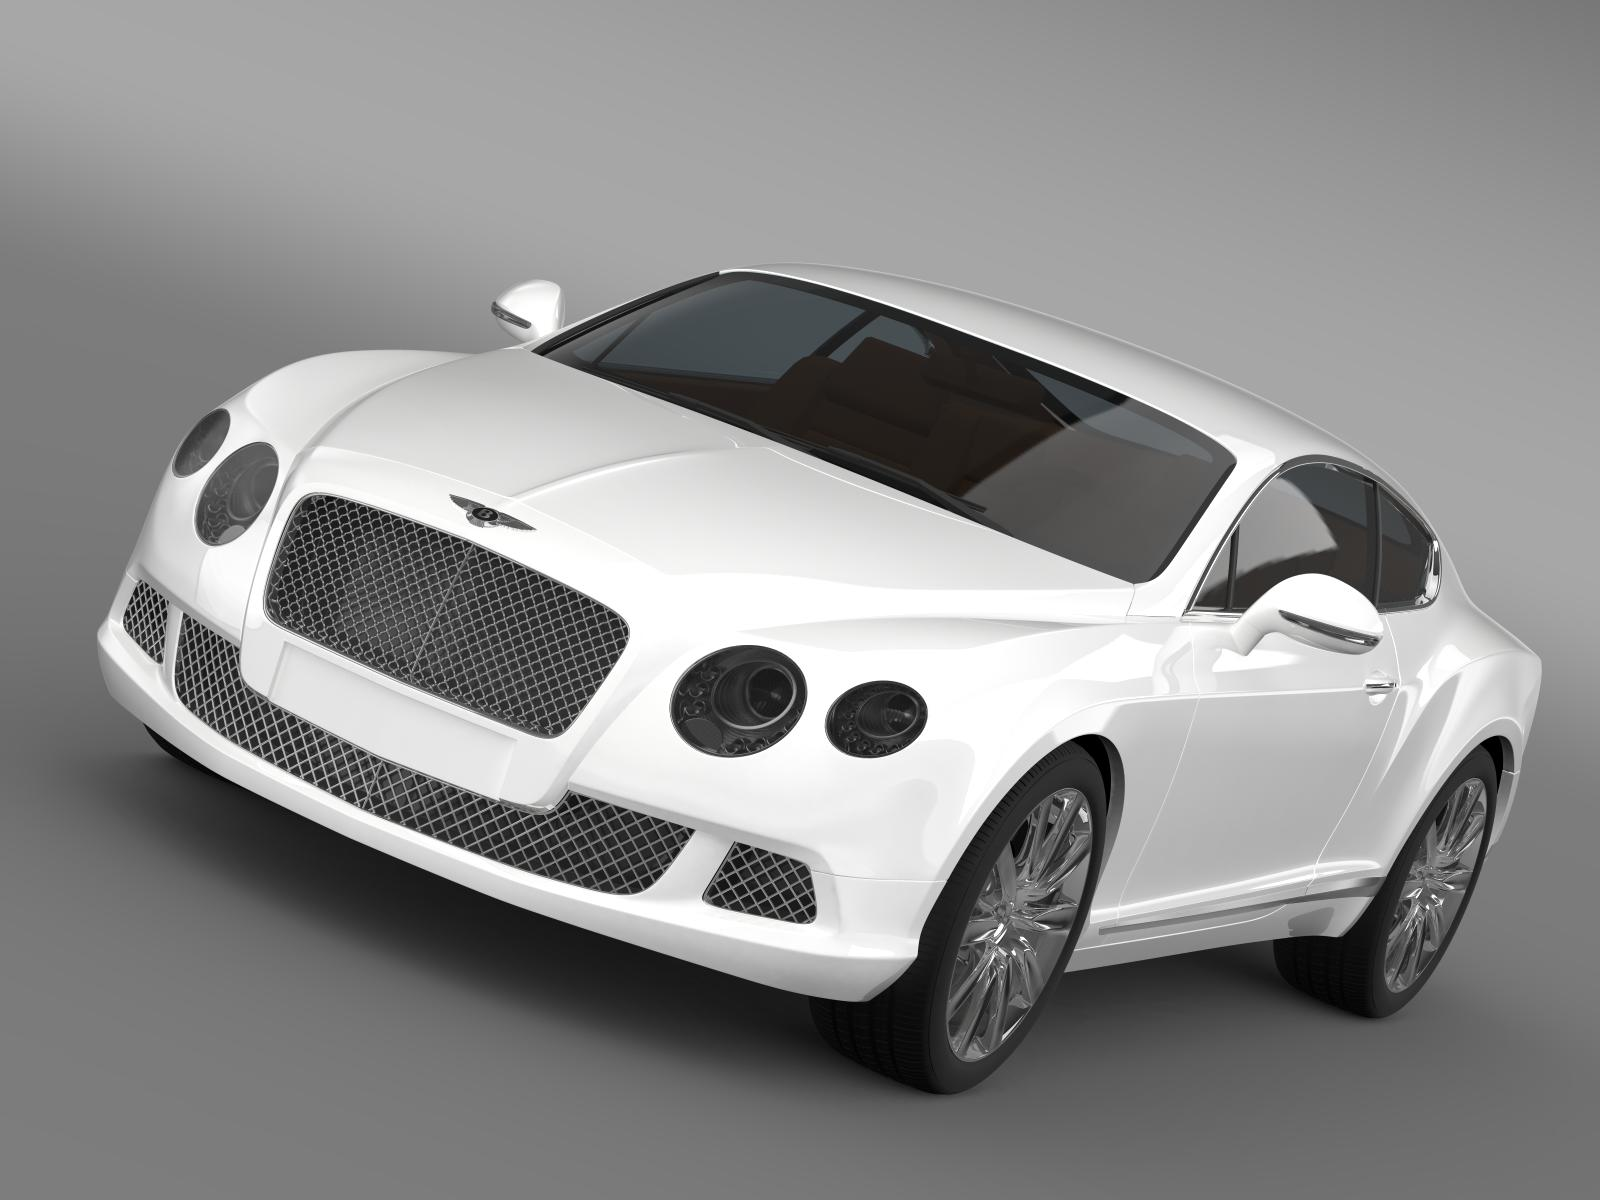 bentley continental gt 2011 3d model 3ds max fbx c4d lwo ma mb hrcxsi obj 163461